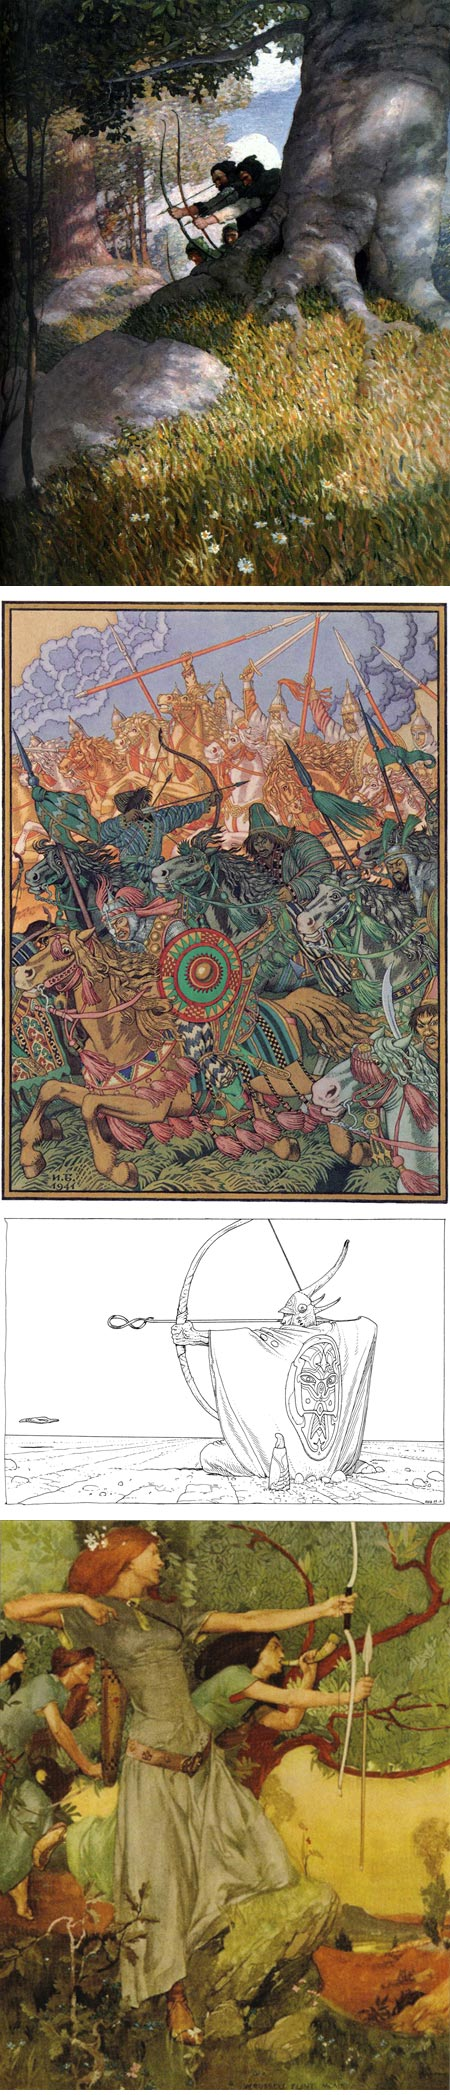 Picturing Archers on Tor.com: N.C. Wyreth, Ivan Bilibin, Jean Giraud, William Russell Flint